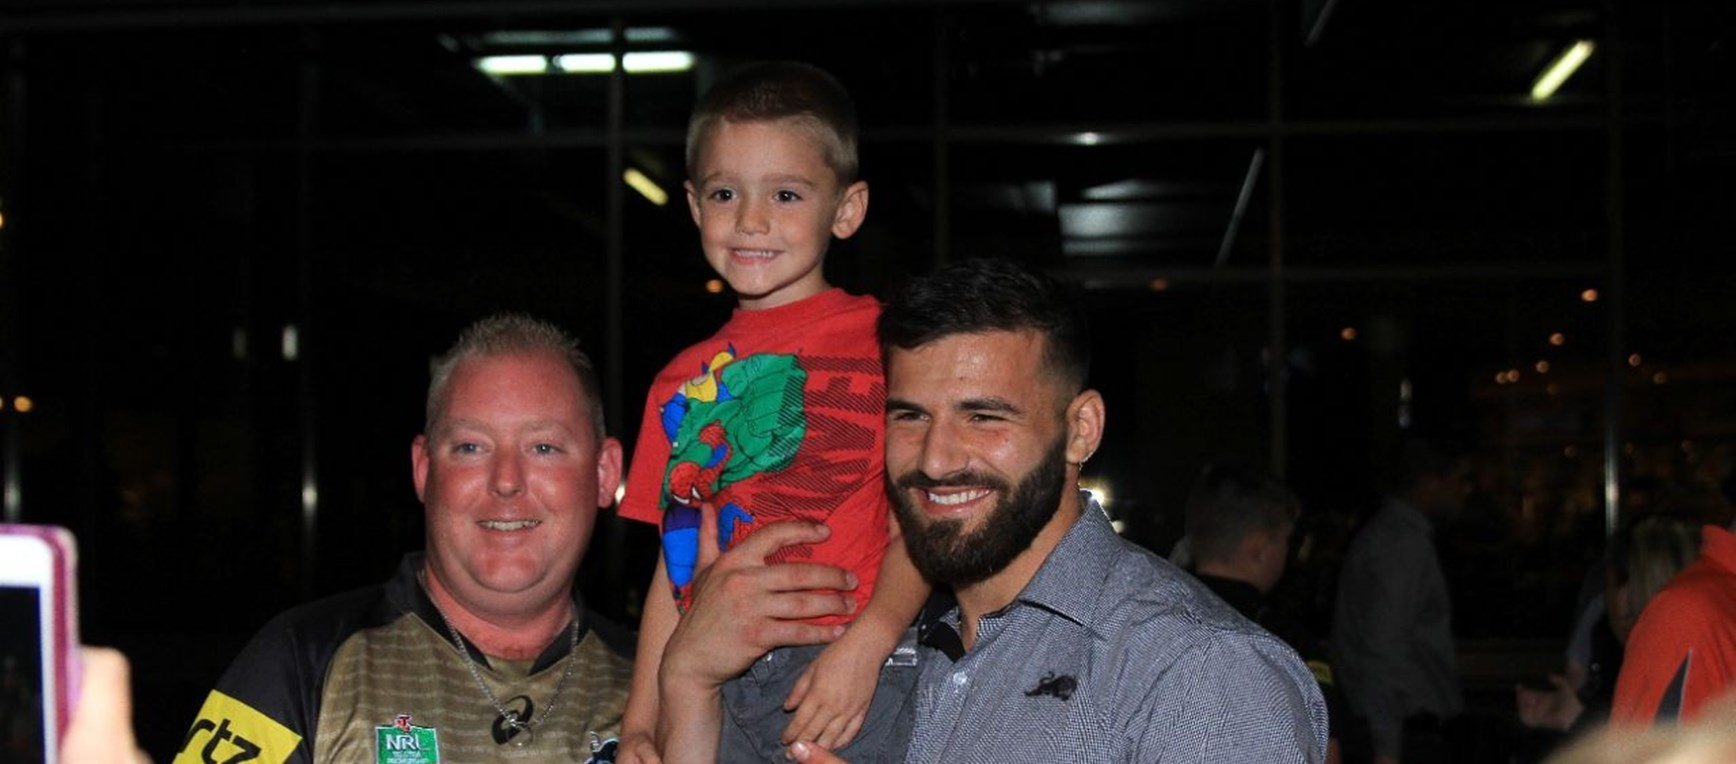 Gallery: Panthers post-game function